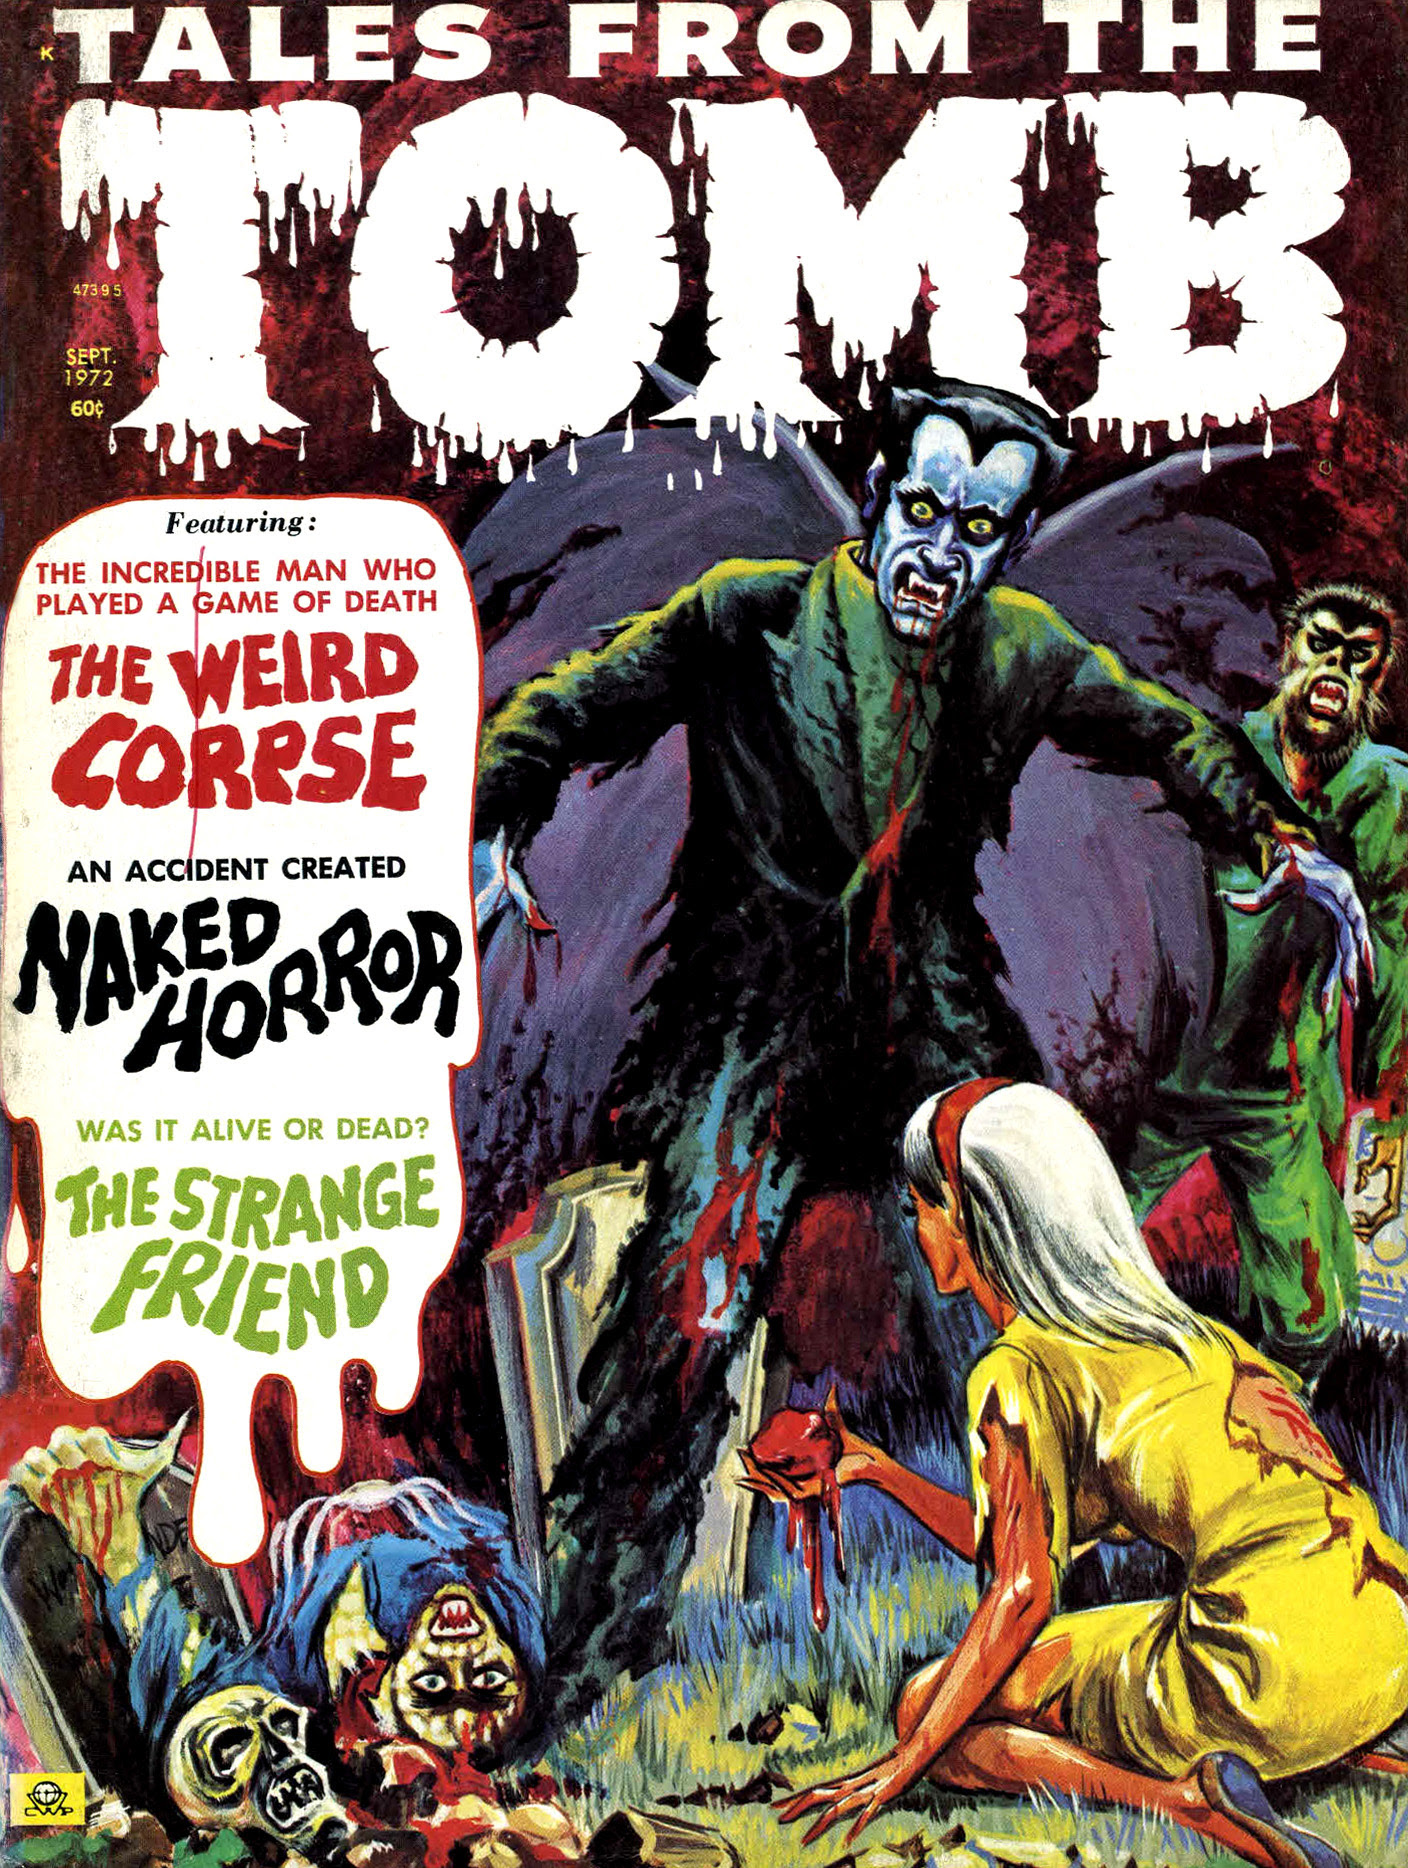 Tales from the Tomb - Vol. 4 #4 (Eerie Publications, 1972)